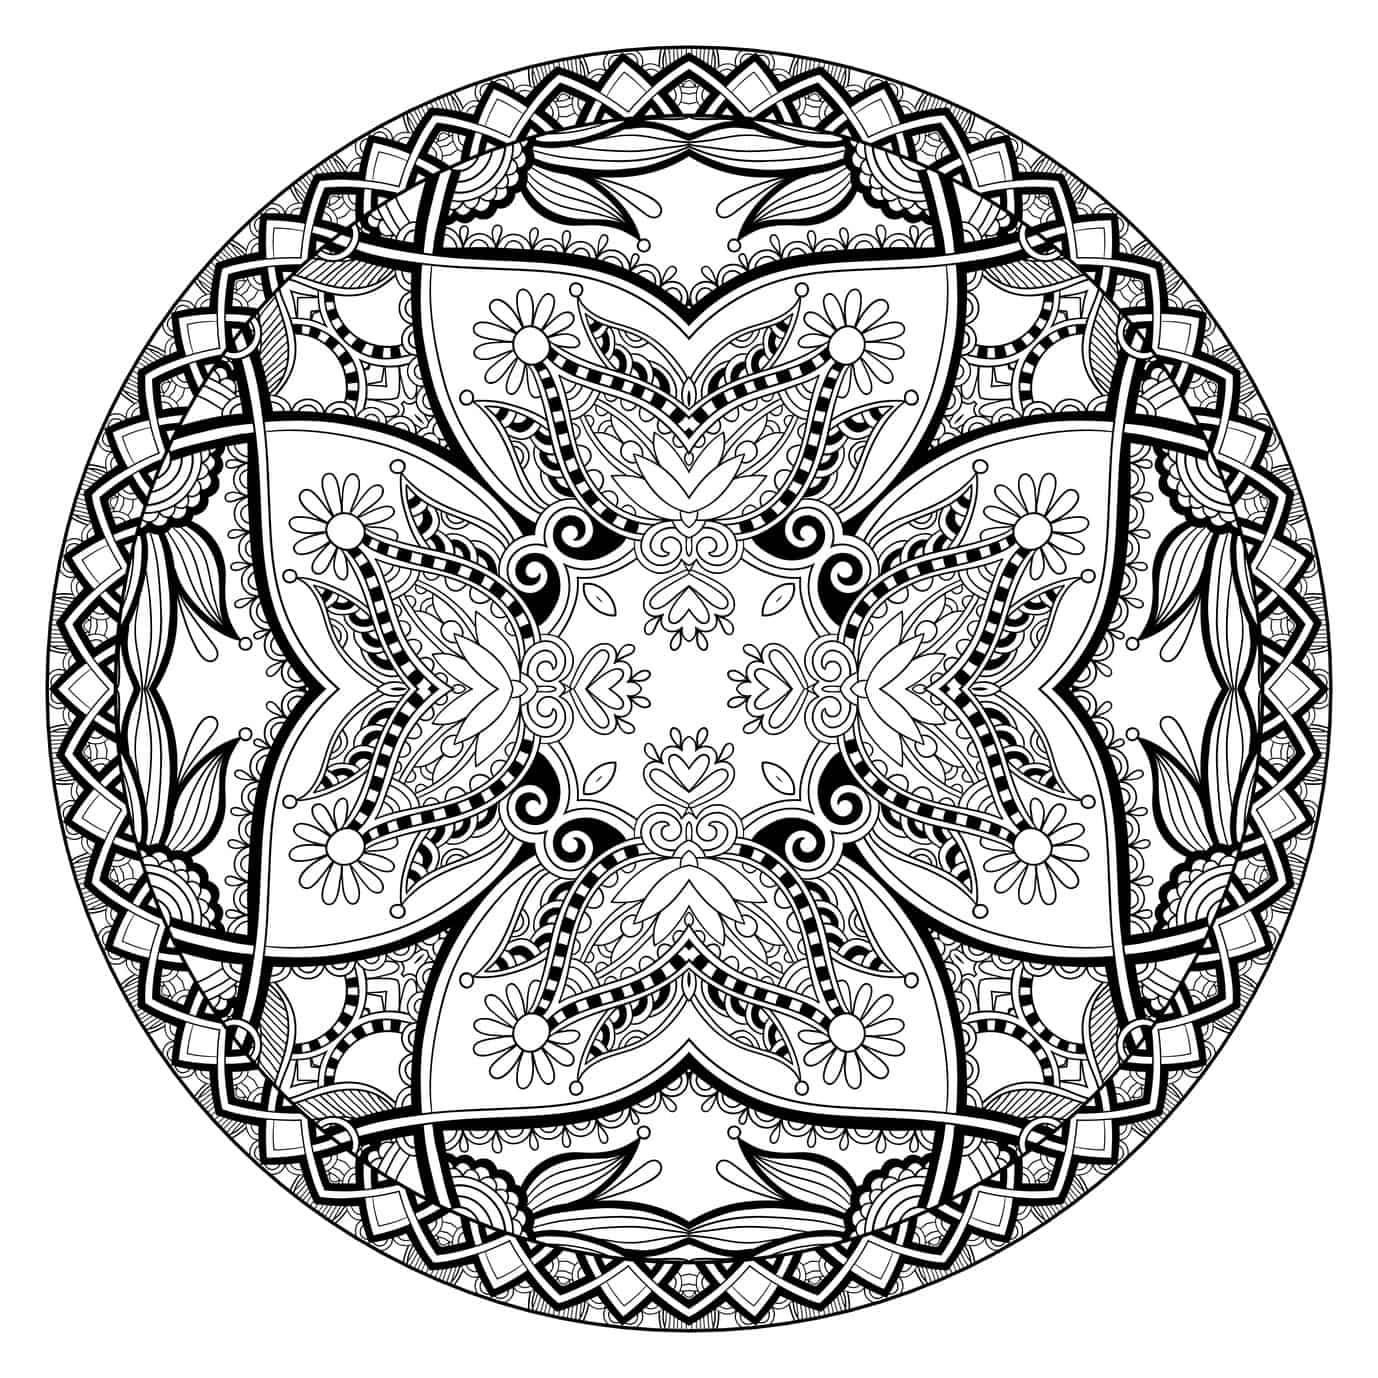 Colouring for adults benefits - Adult Coloring Mandala